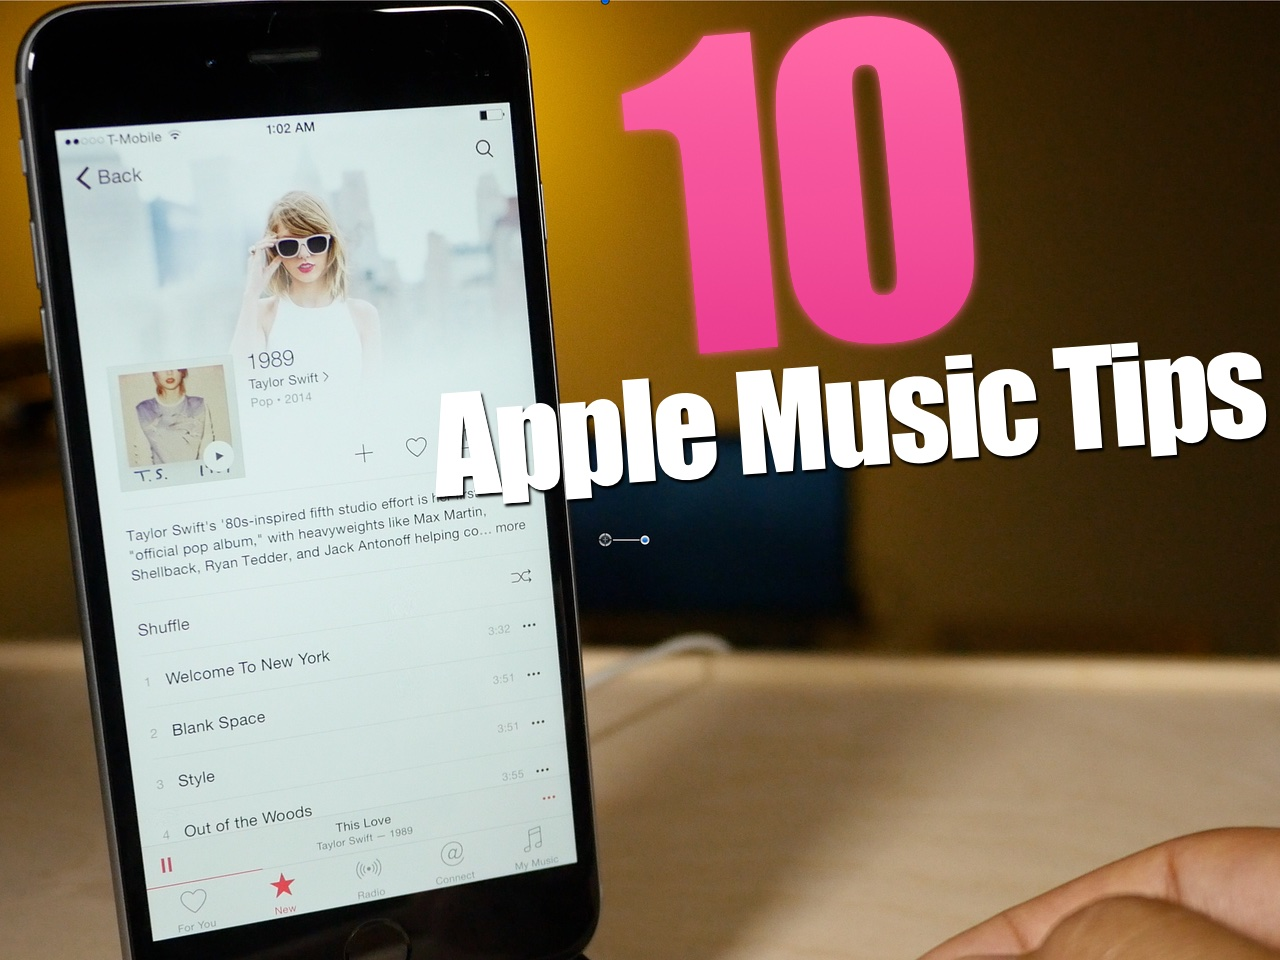 10 Apple Music Tips iOS 8.4